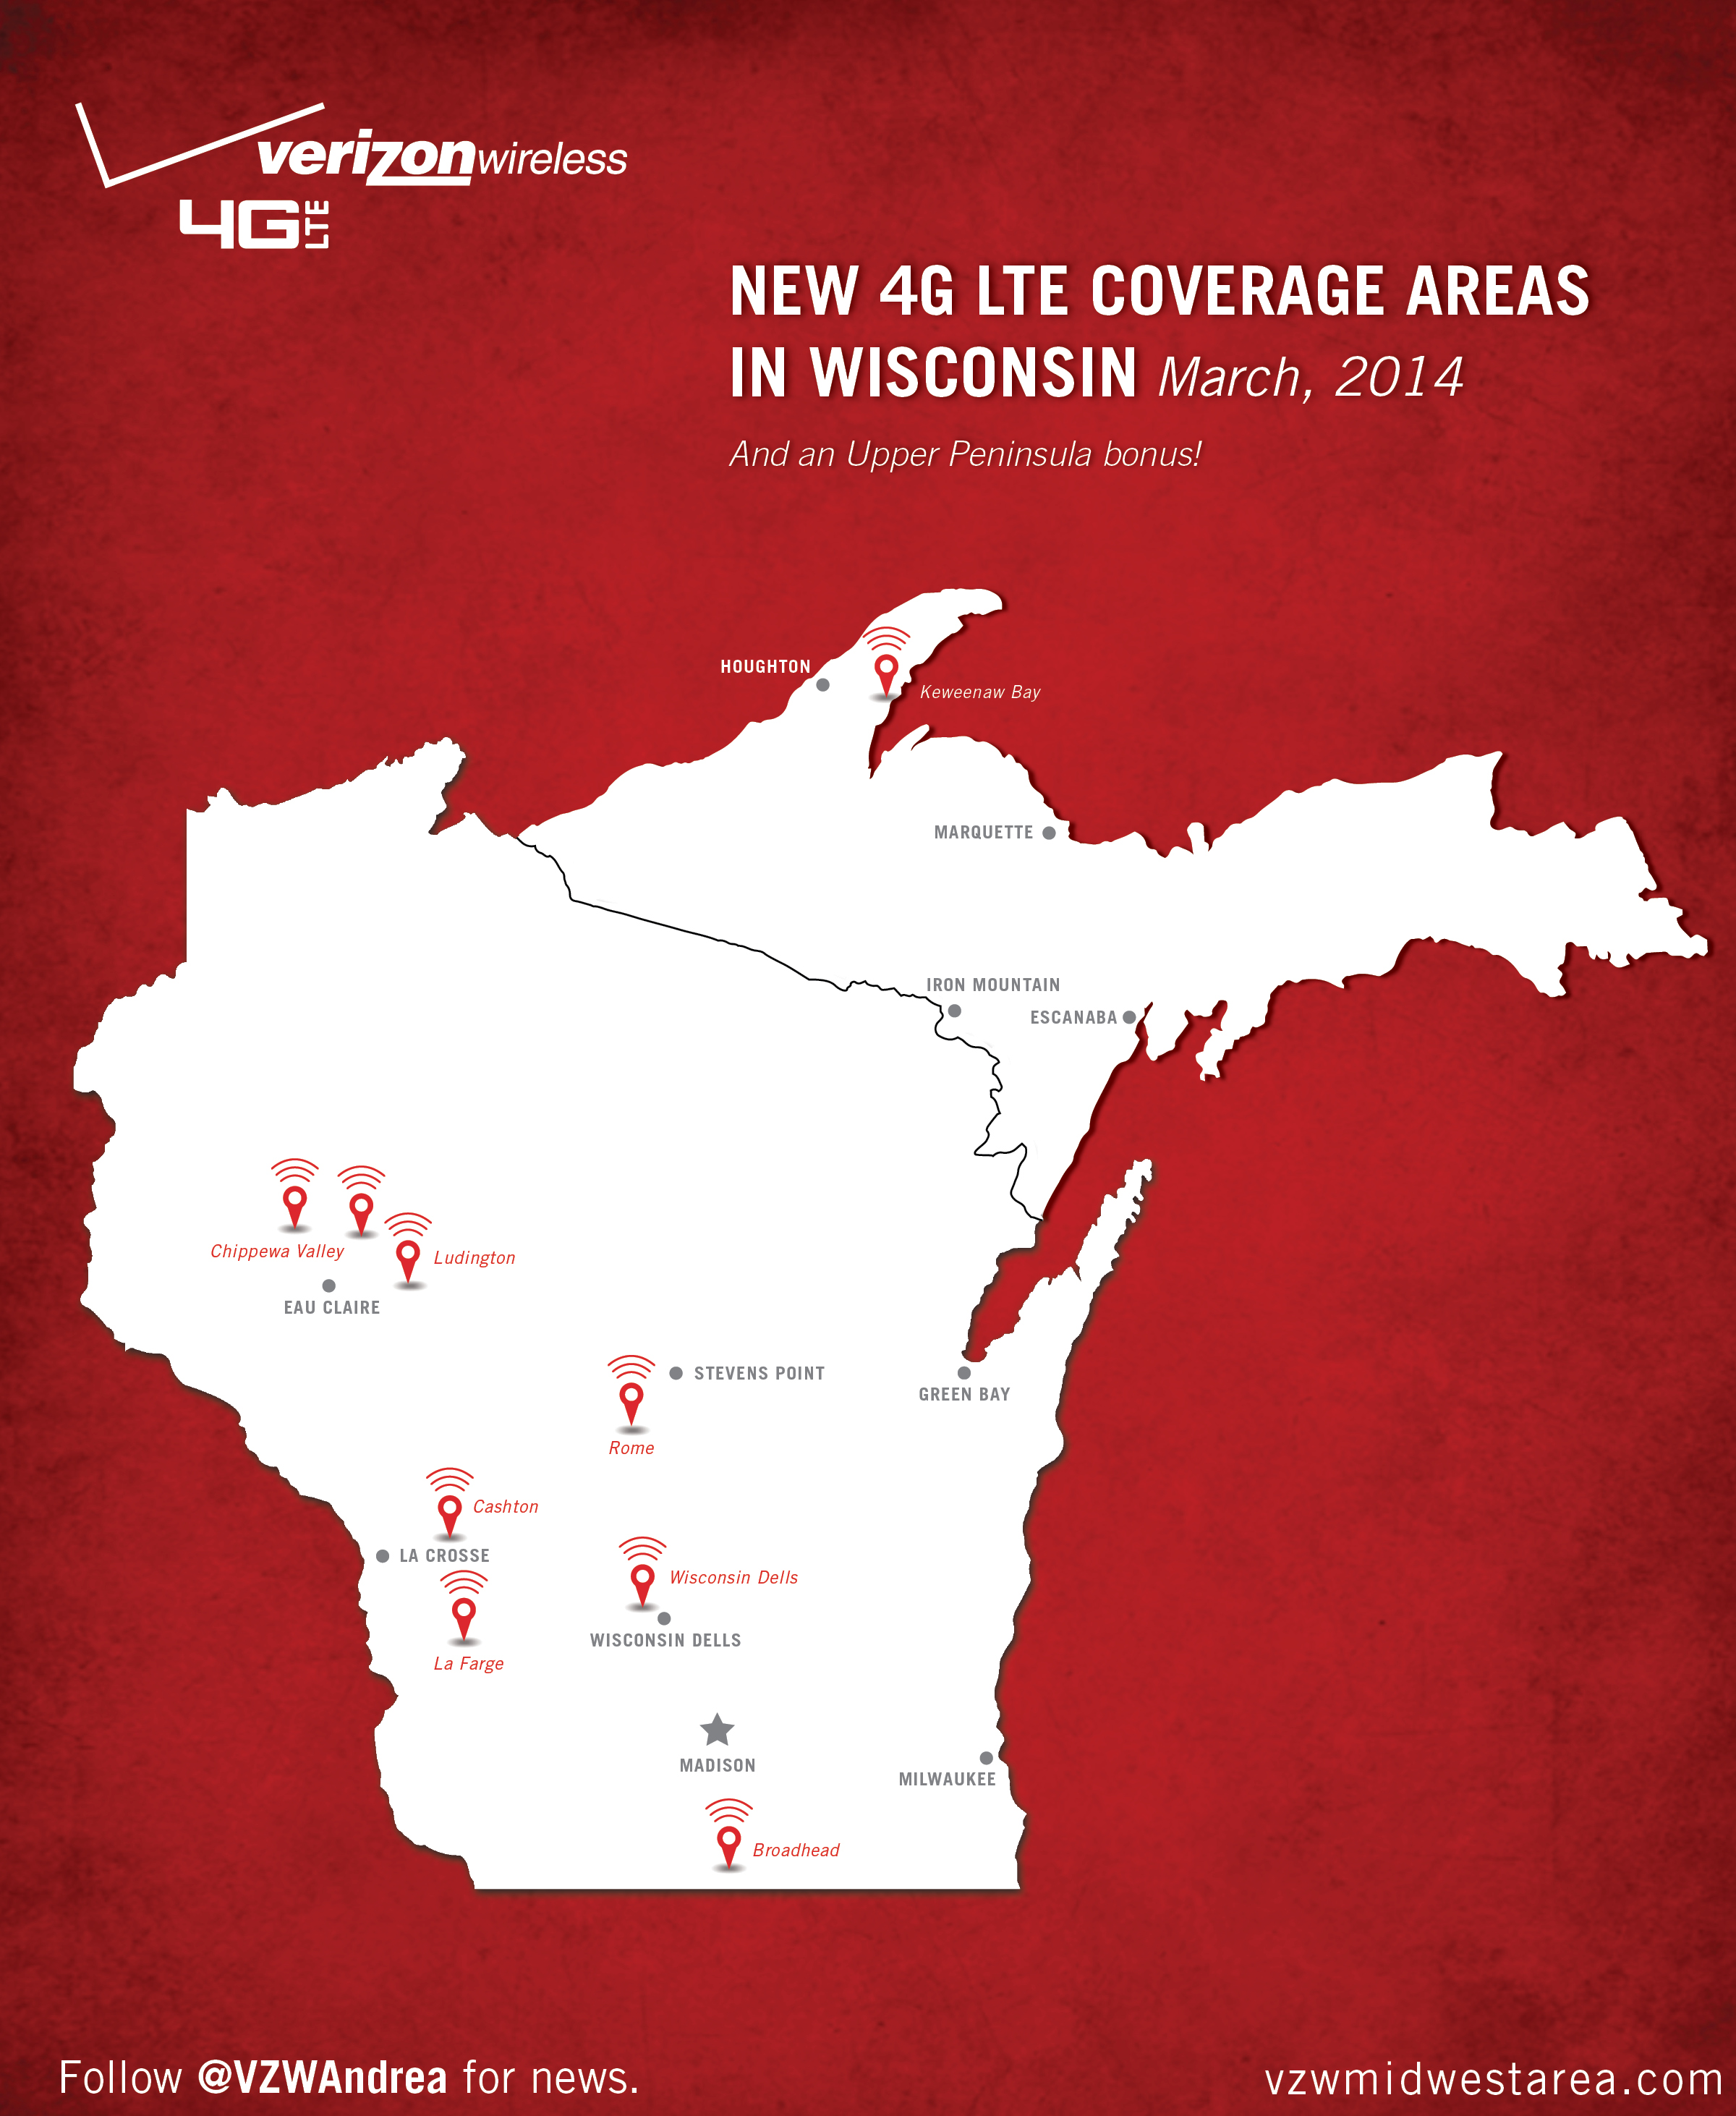 Expanded Verizon G LTE Network In Wisconsin And Upper Peninsula - Verizon coverage map wisconsin